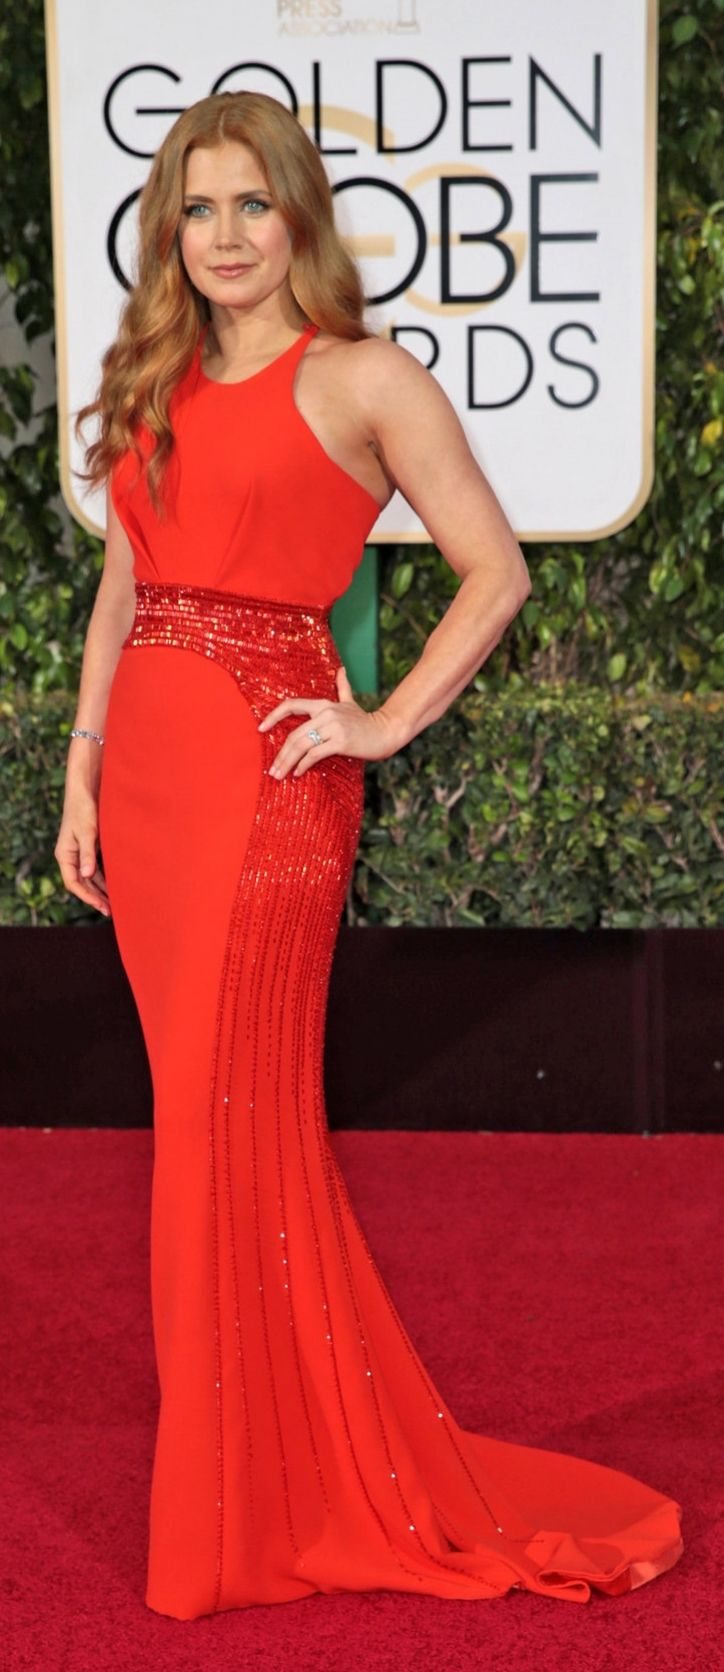 Golden Globes 2016 Red Carpet See The Looks Celebrity Red